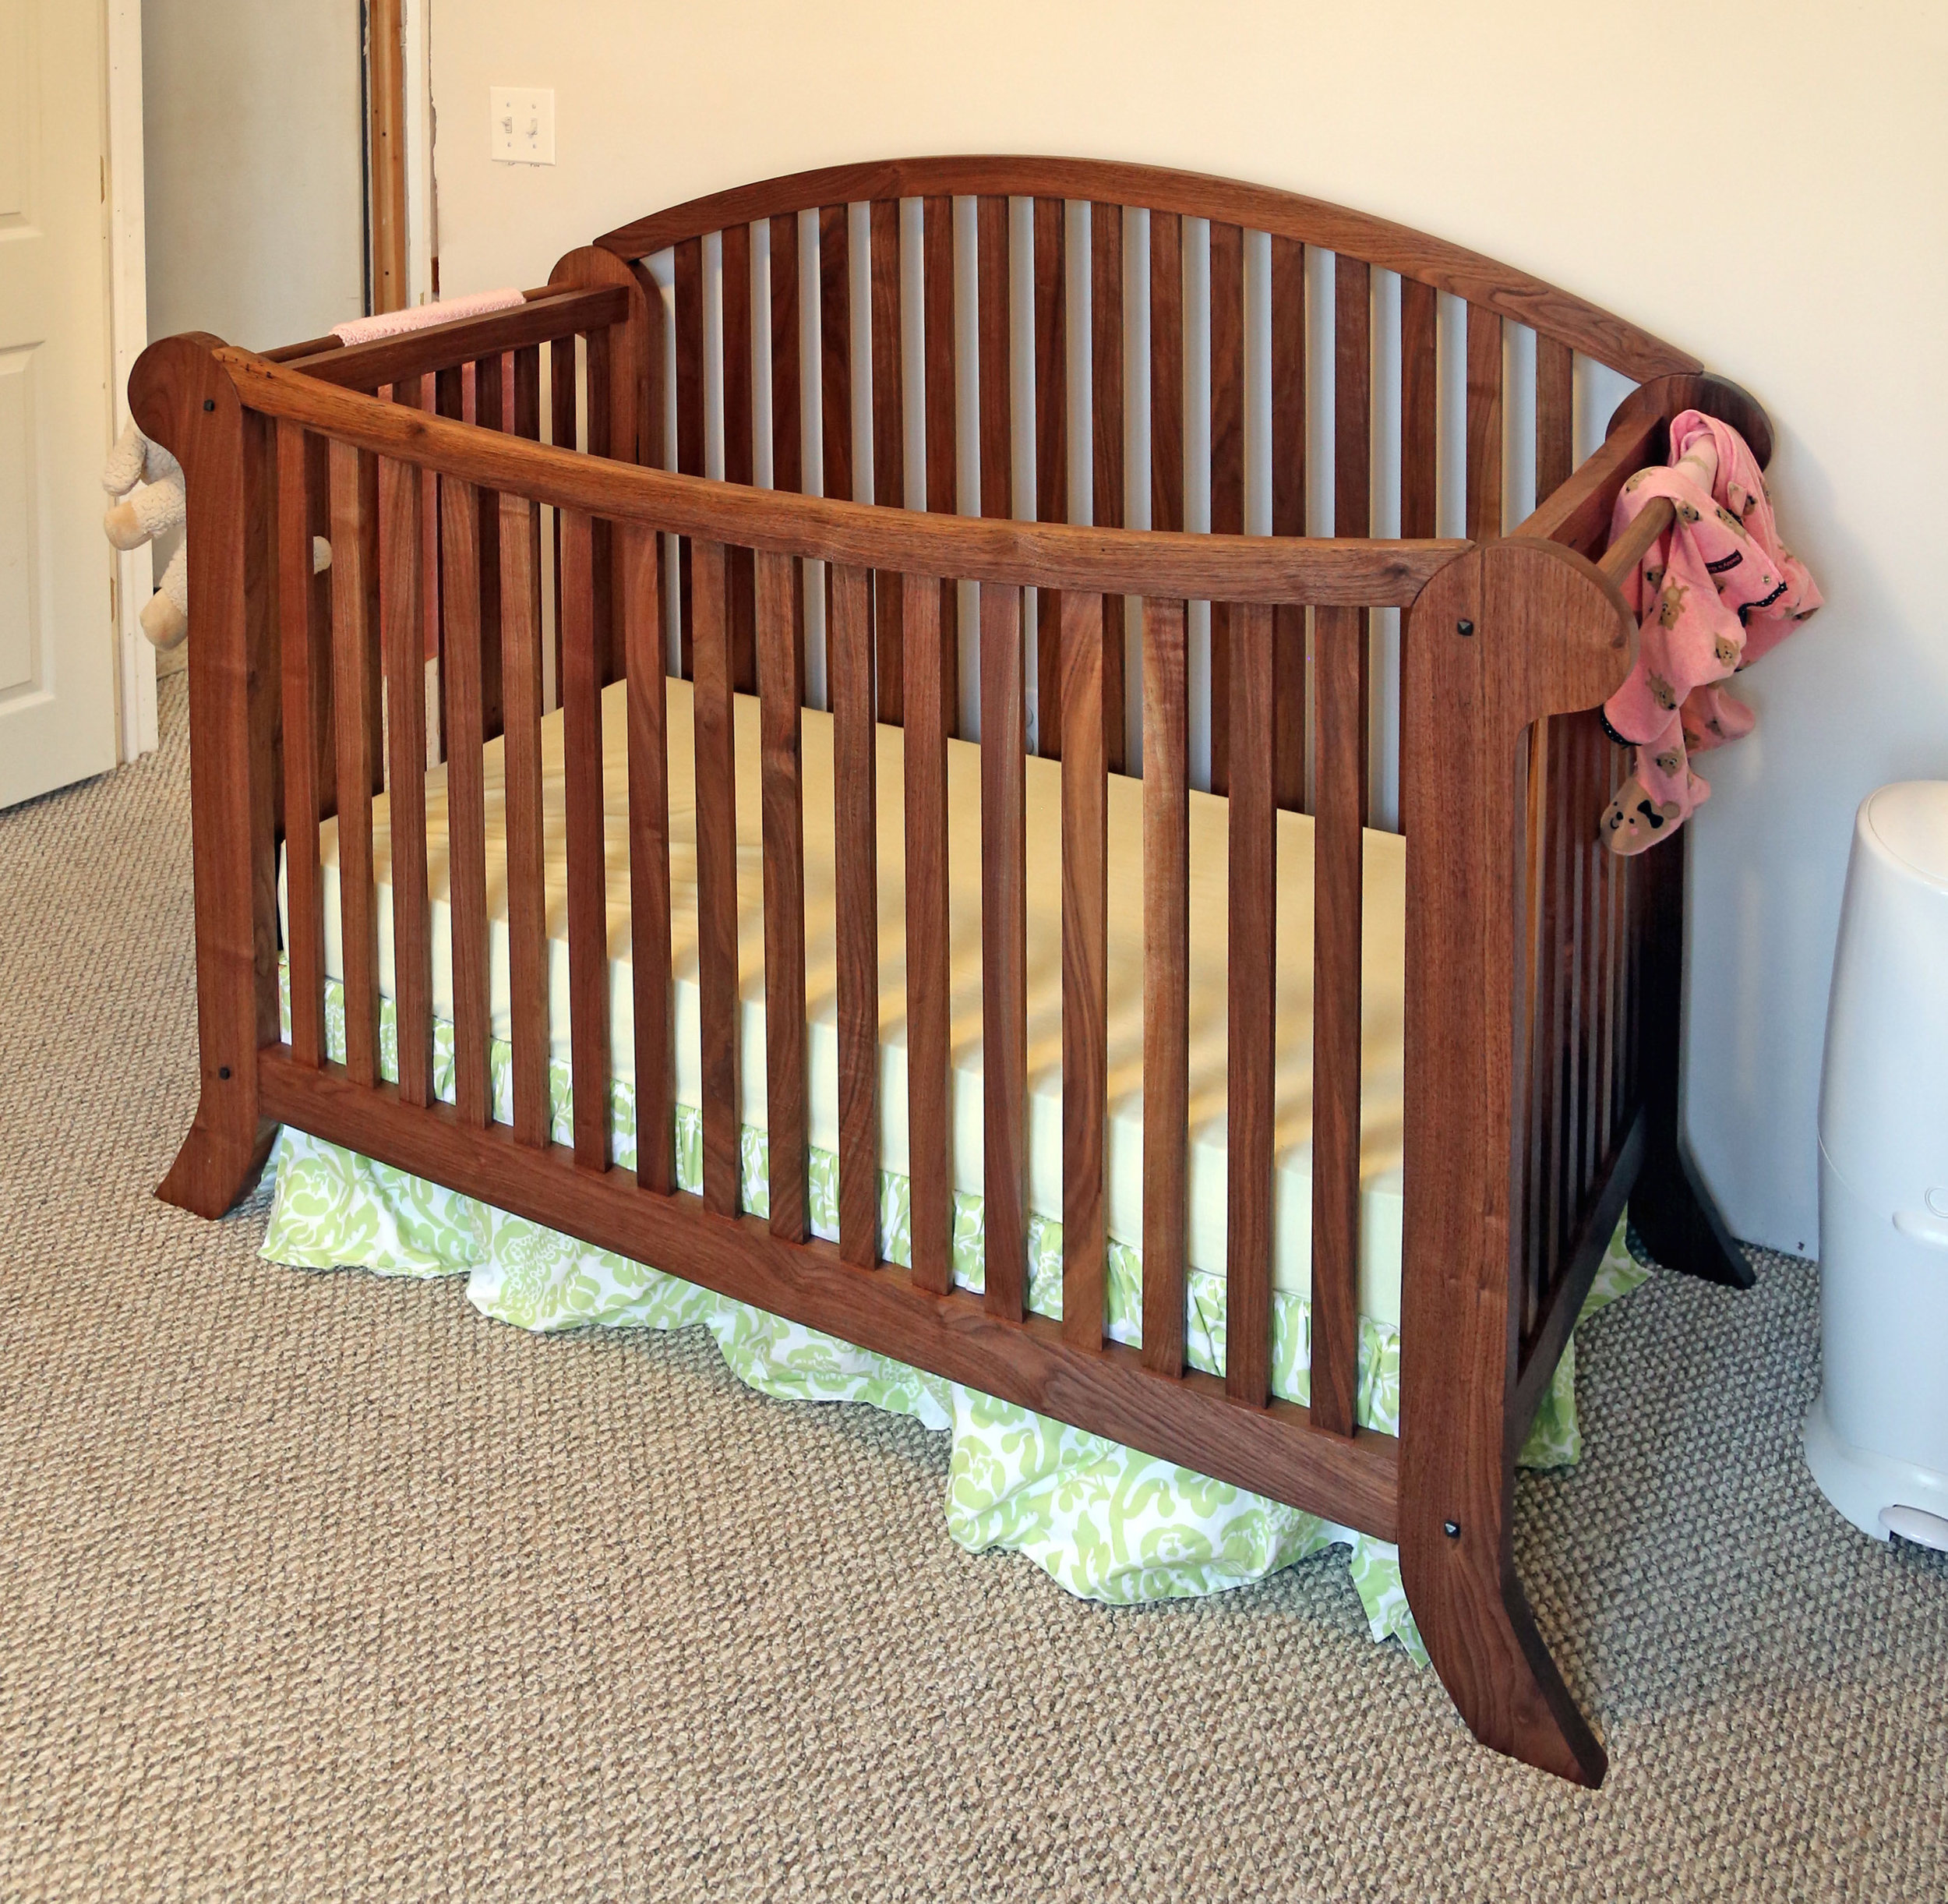 Another shot of the finished crib